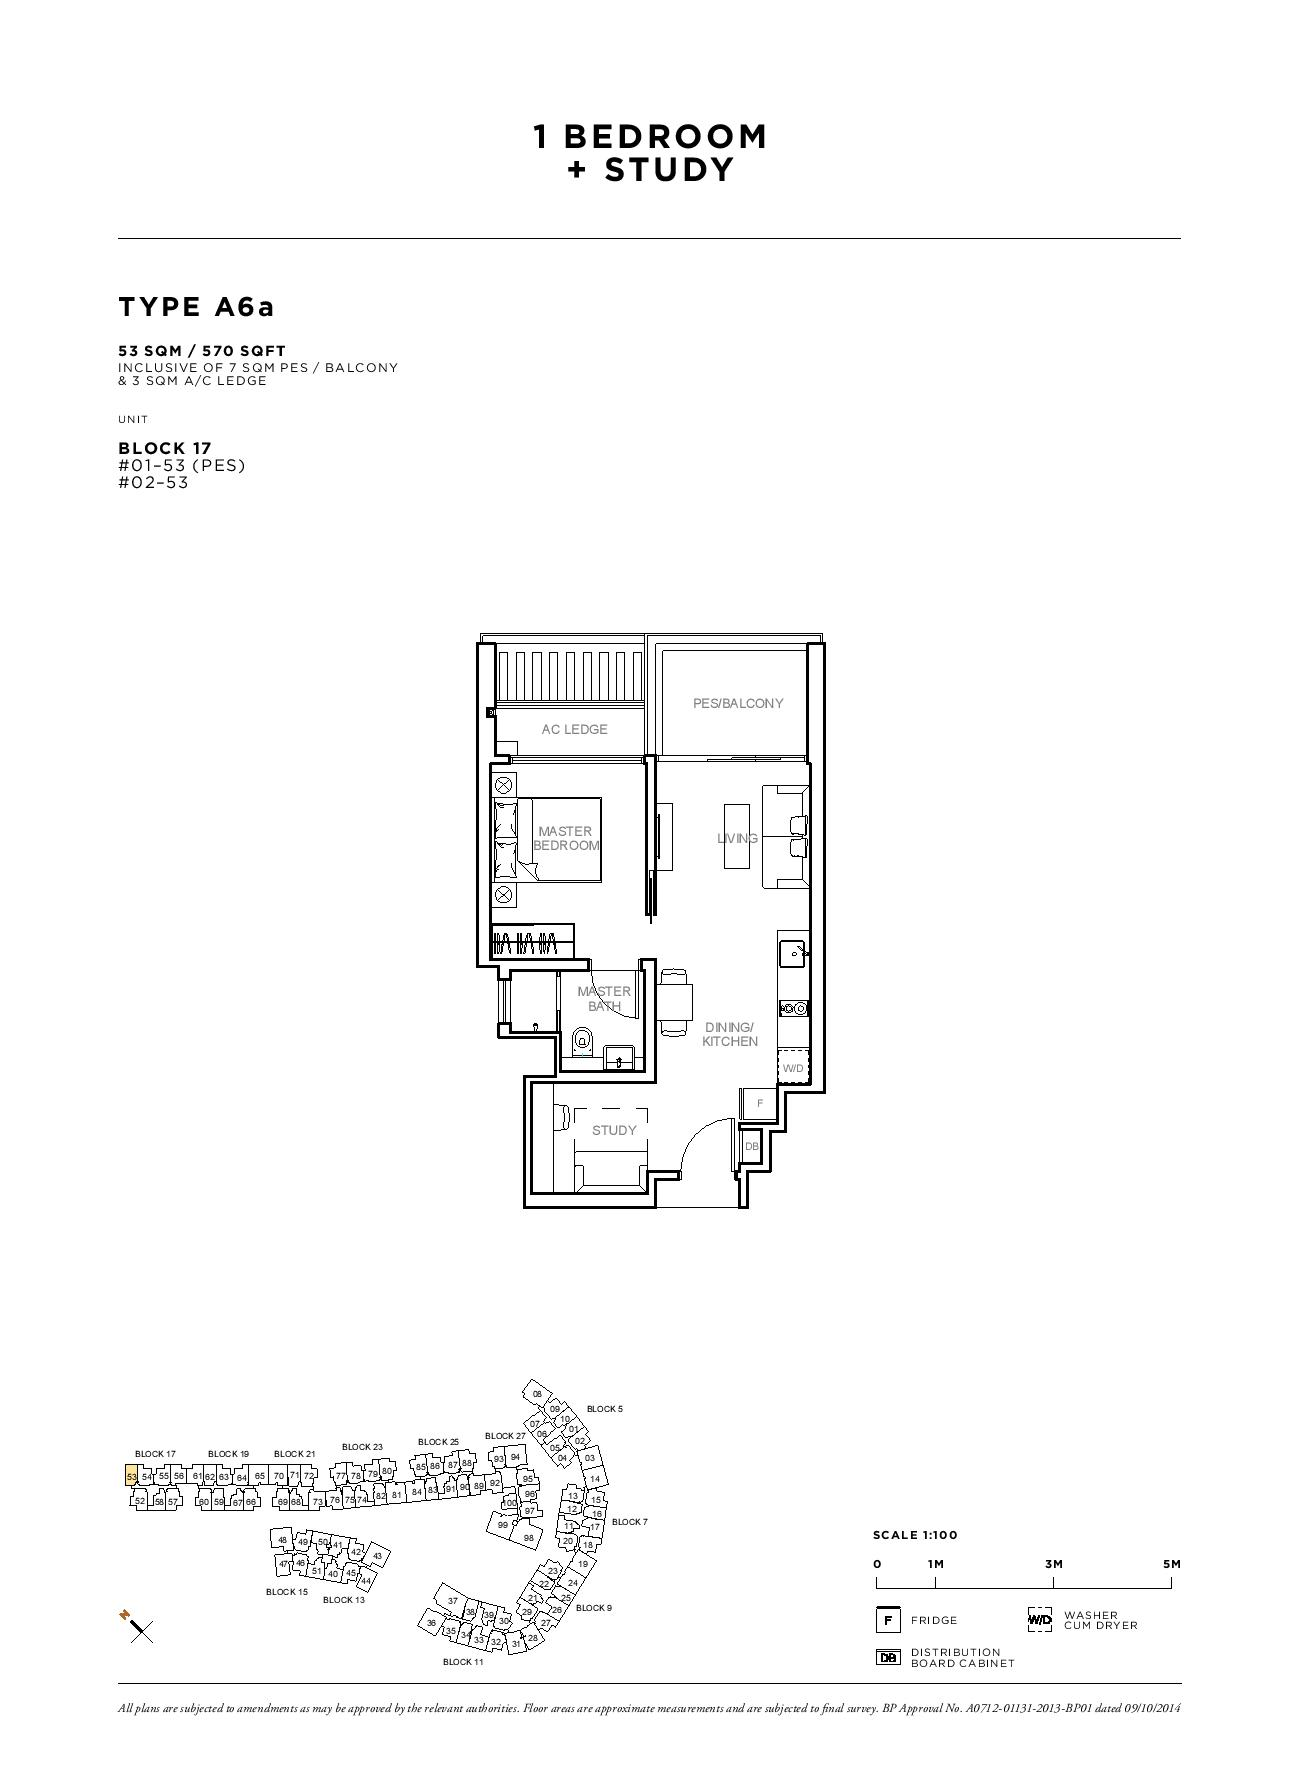 Sophia Hills 1 Bedroom + Study Type A6a Floor Plans